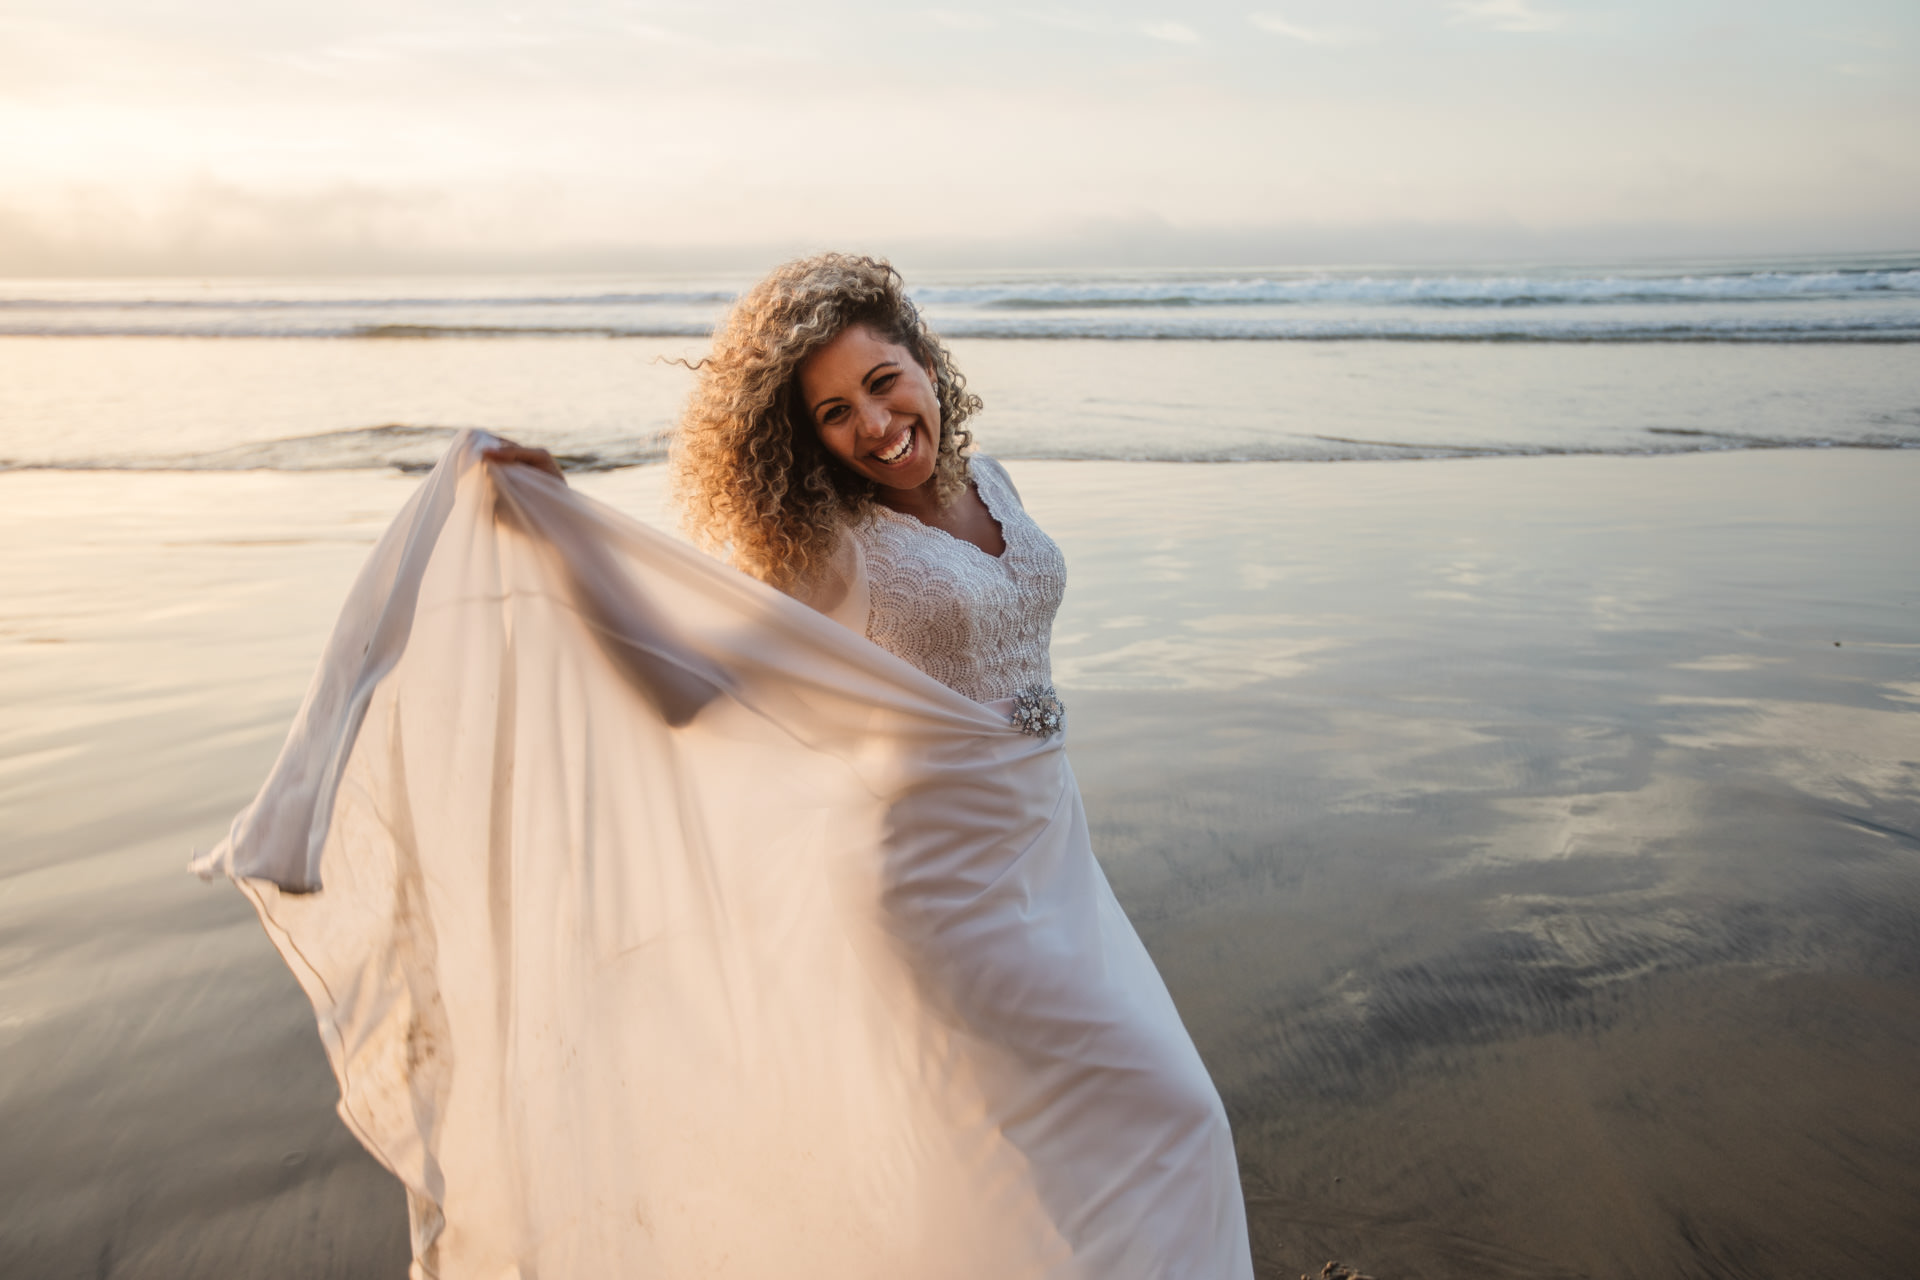 Gerusa Eric La Jolla San Diego Beach Wedding by Faces Photography